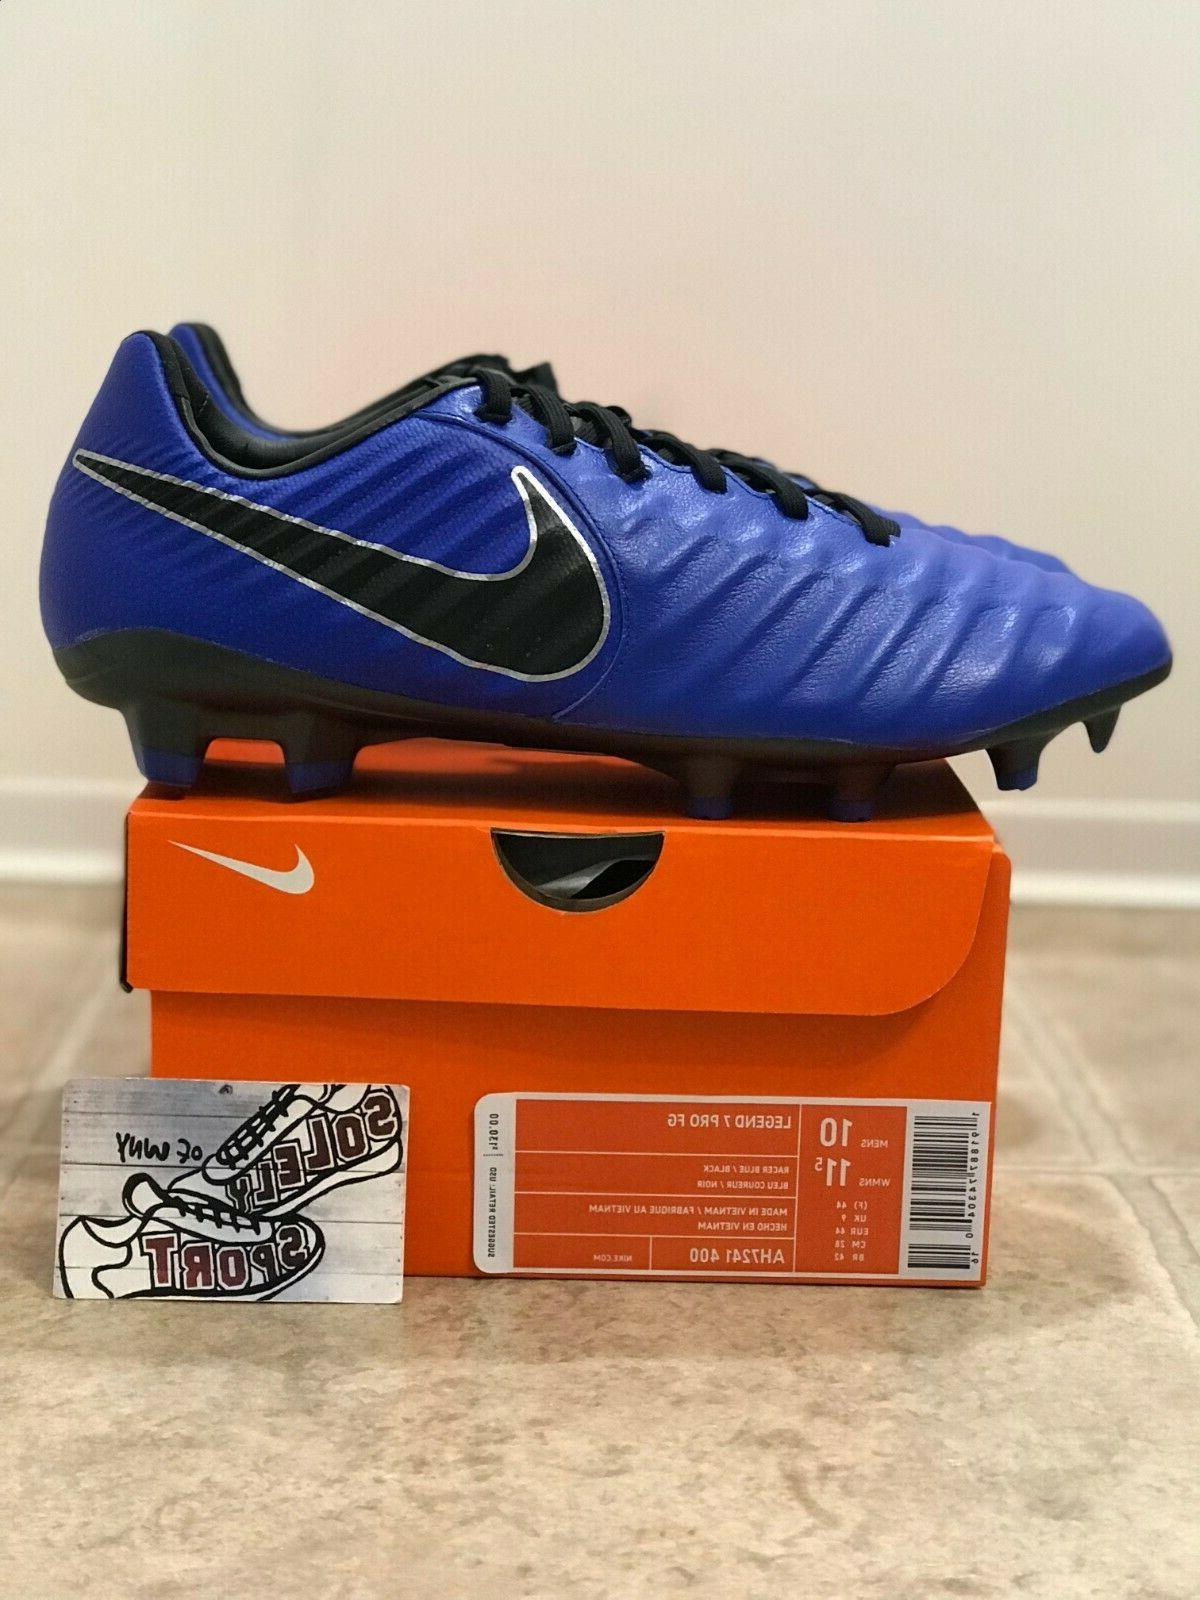 VII Elite Soccer AH7241 400 Blue Black